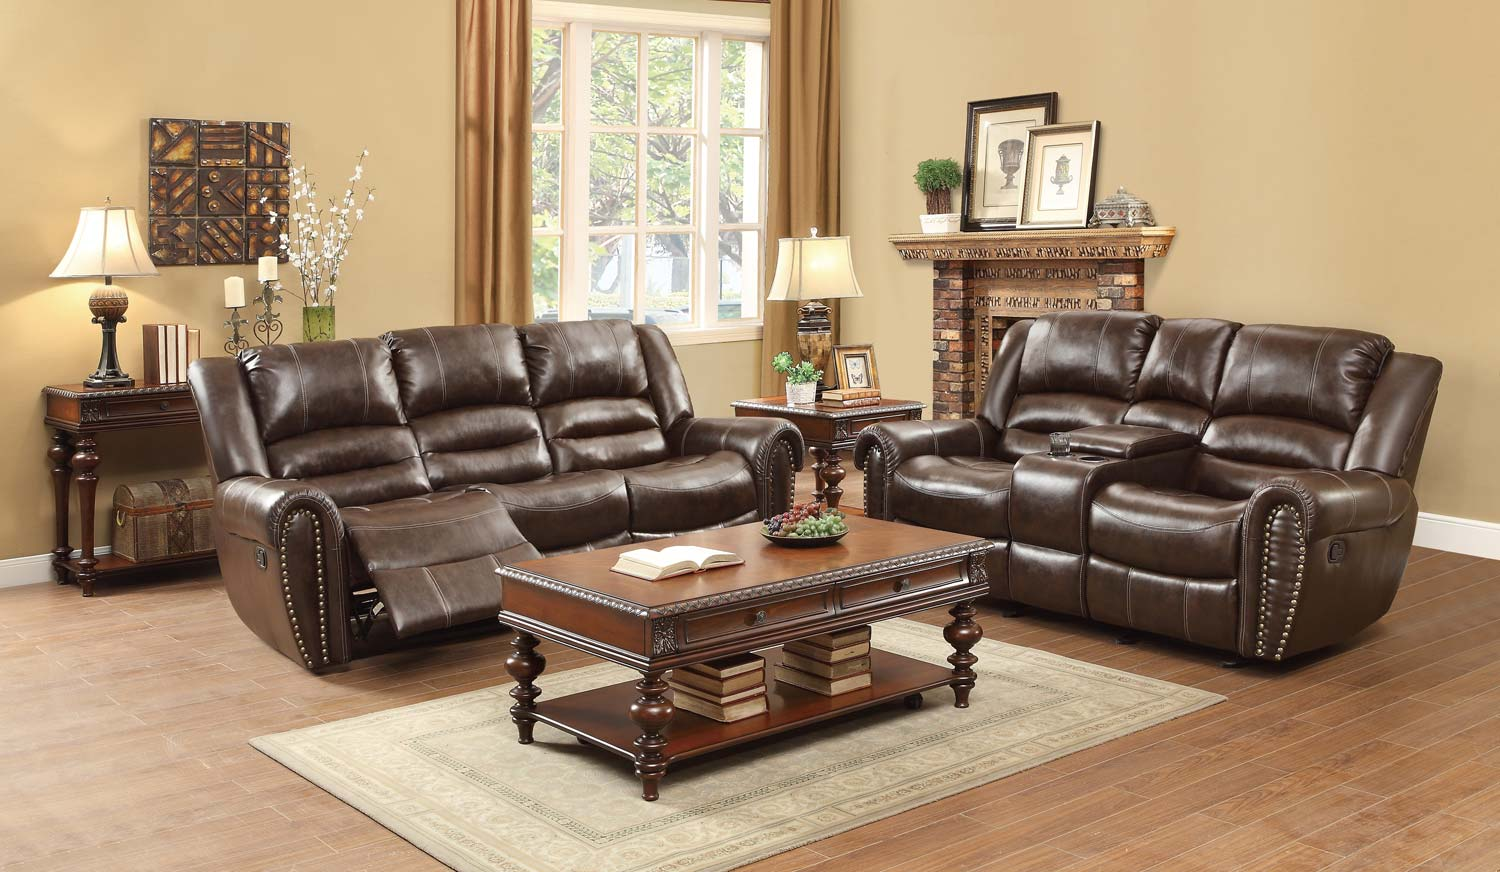 Homelegance Center Hill Reclining Sofa Set - Dark Brown Bonded Leather Match